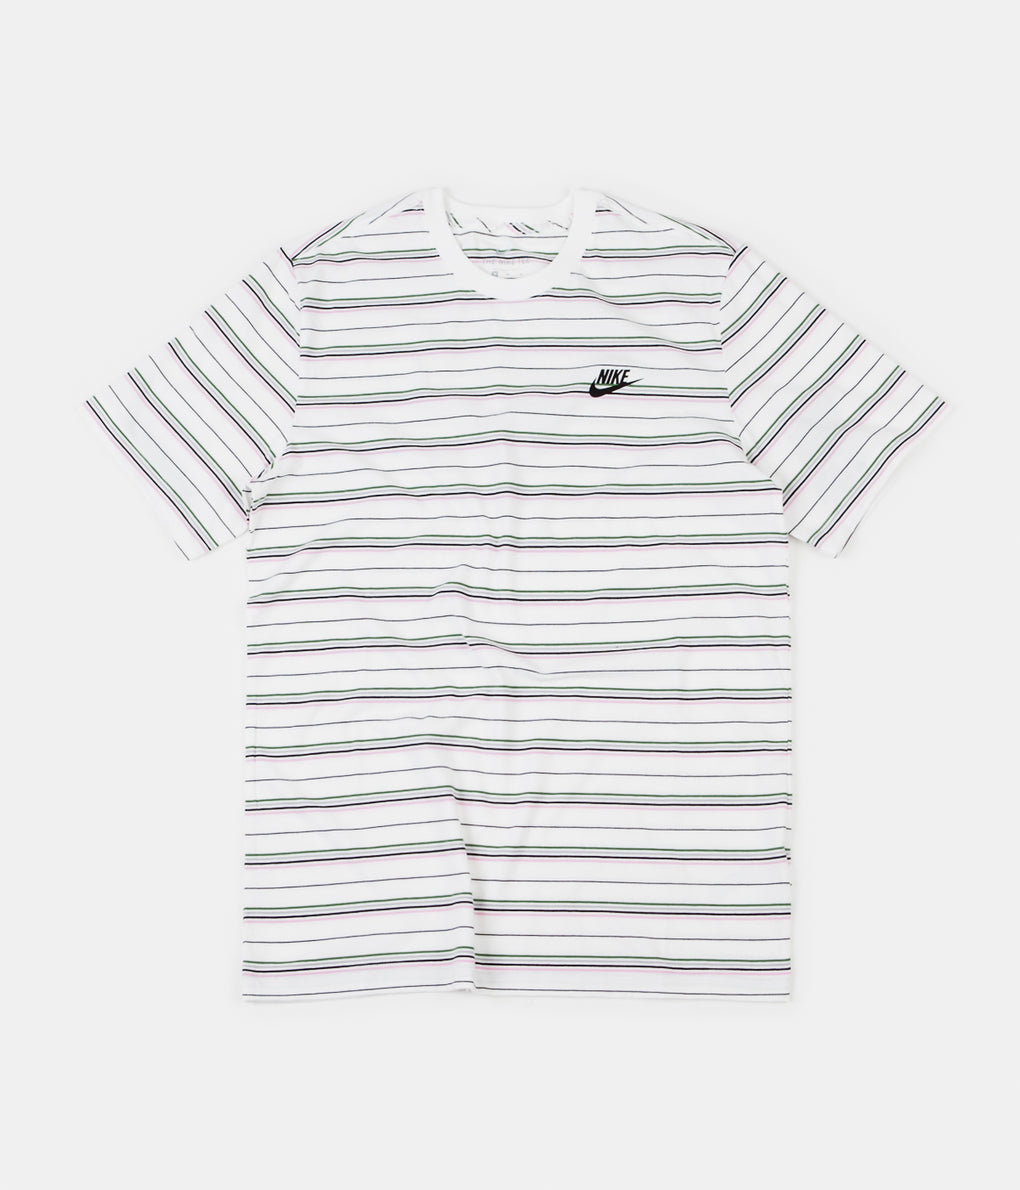 Nike Striped T-Shirt - White / Black